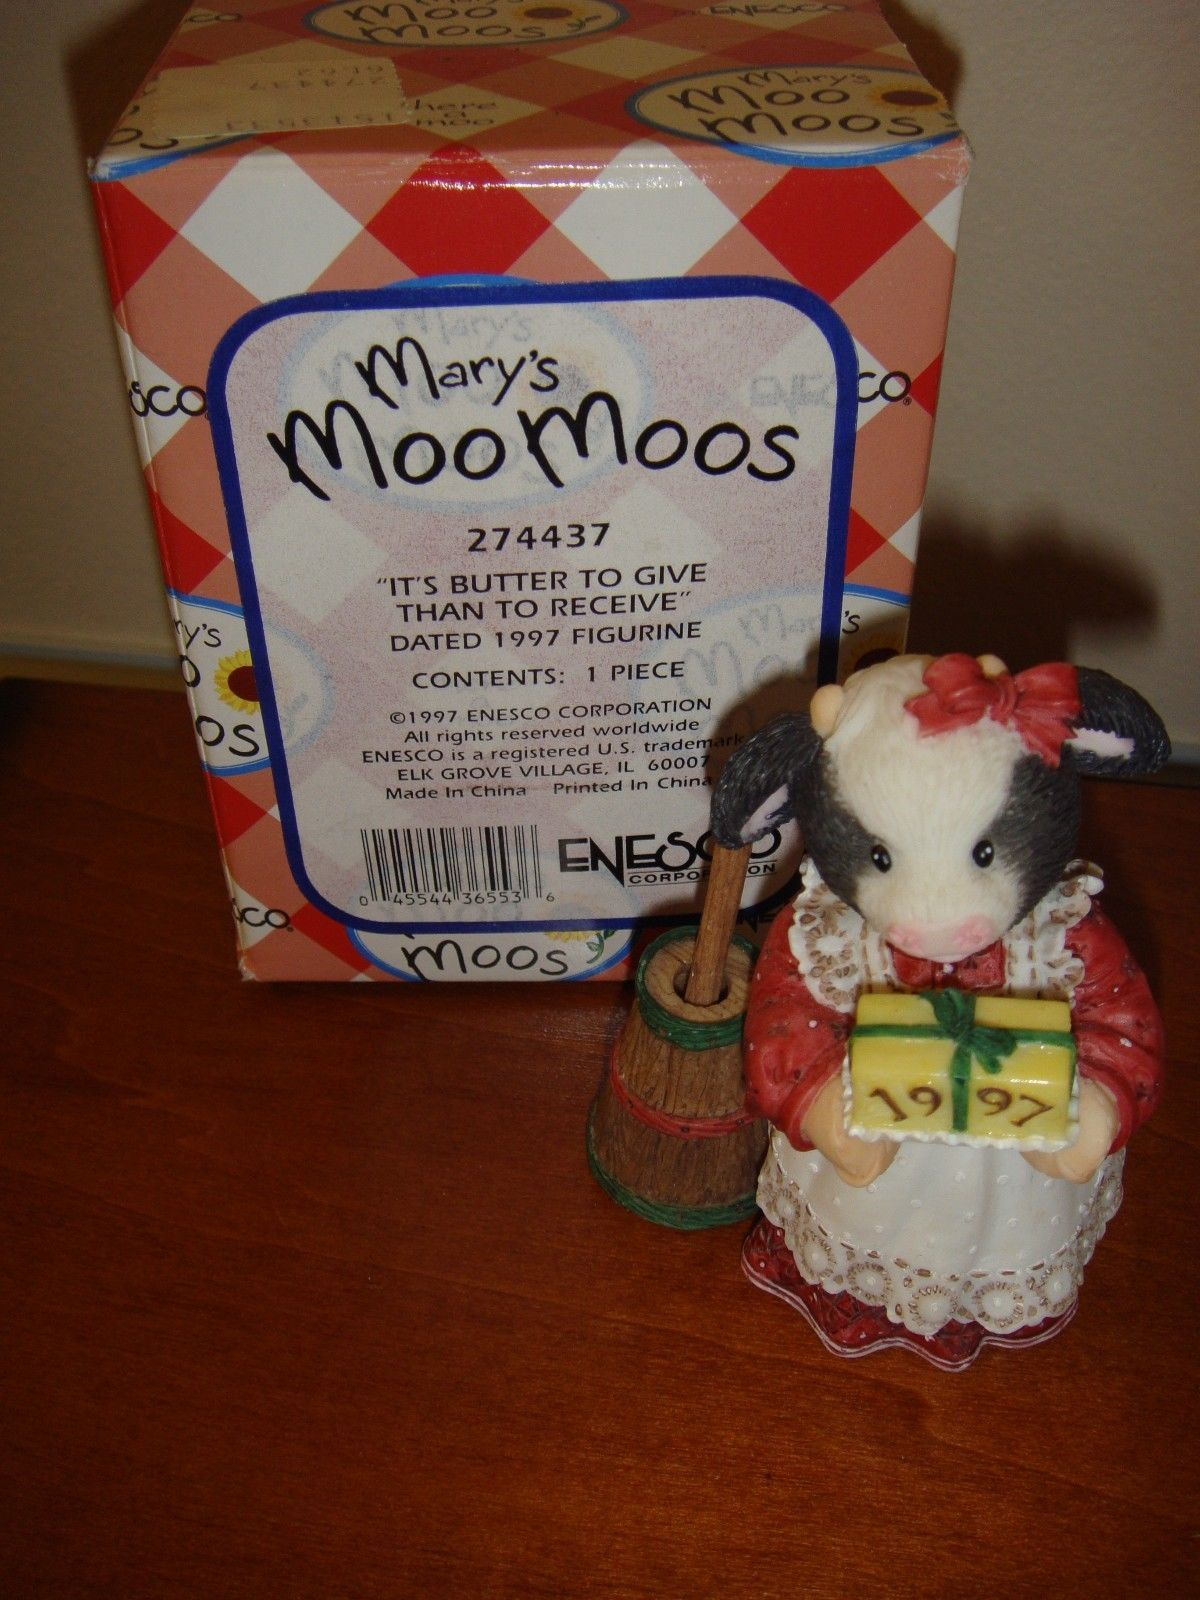 Mary's Moo Moos It's Butter To Give Than To Receive Dated 1997 Figurine, 274437